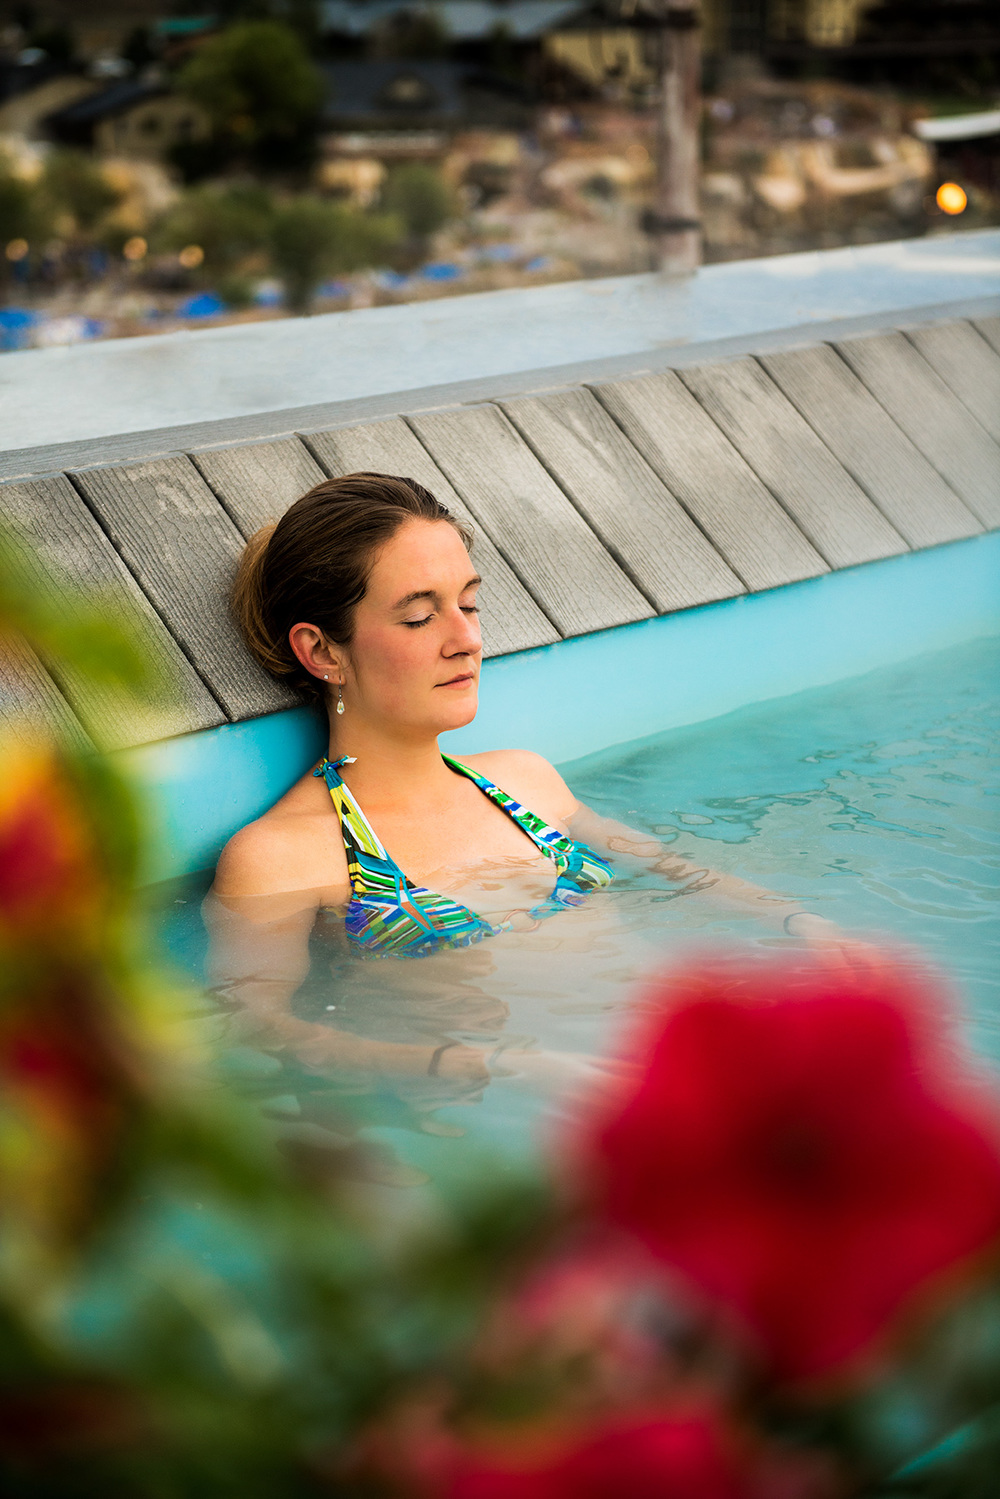 Advertisng image of a woman soaking in a rooftop hot spring in Pagosa Springs, CO